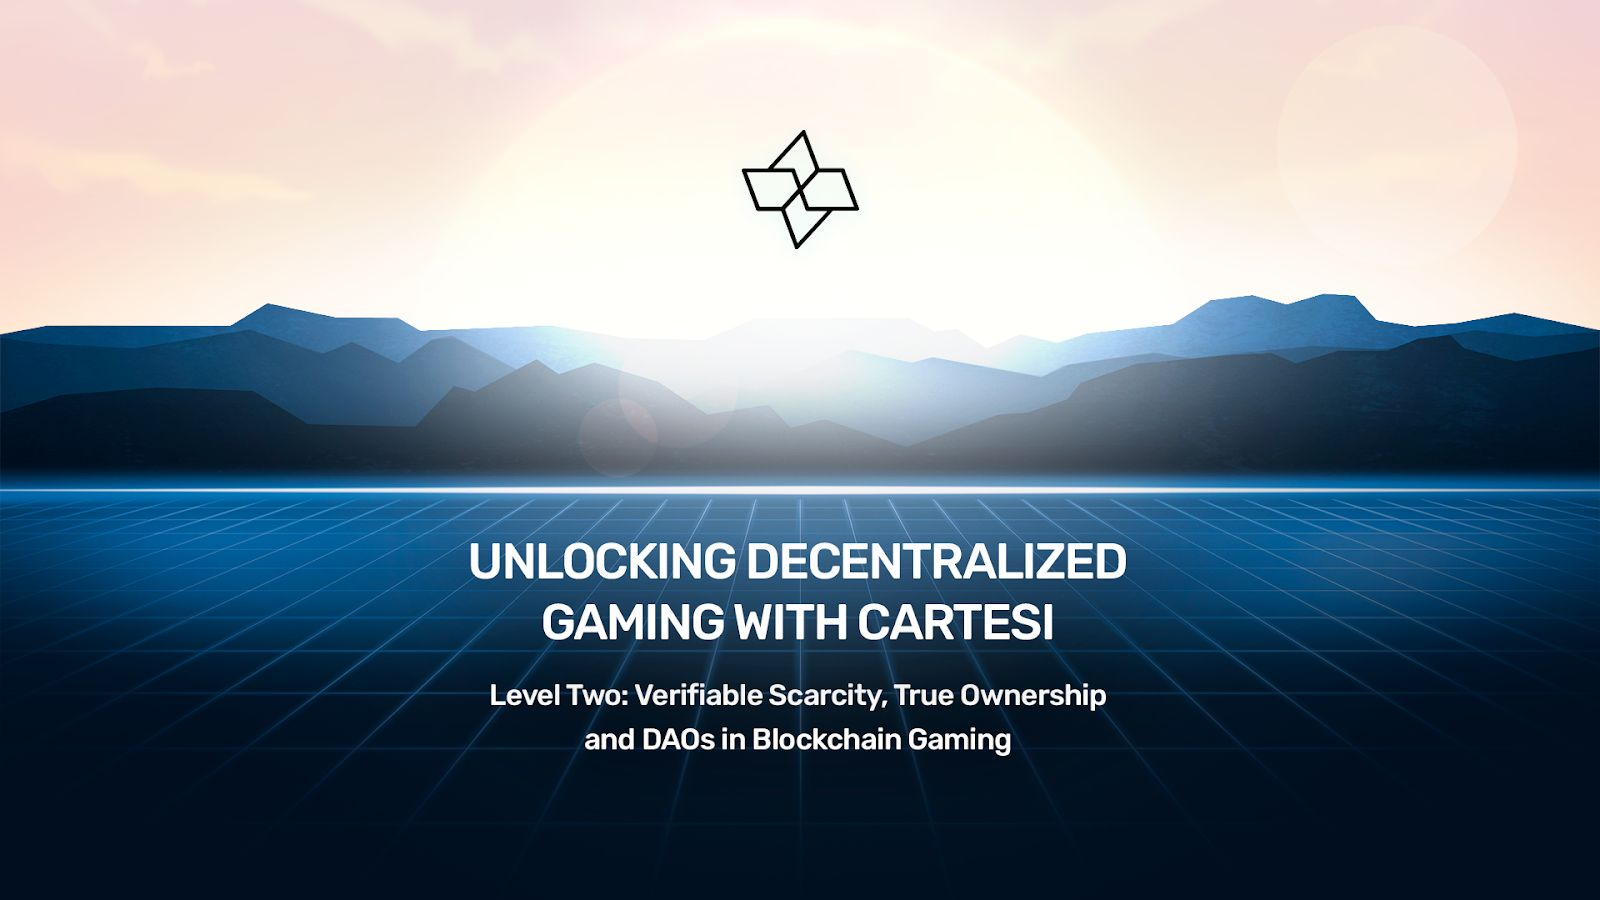 /unlocking-the-next-level-of-decentralized-gaming-r03c34pf feature image